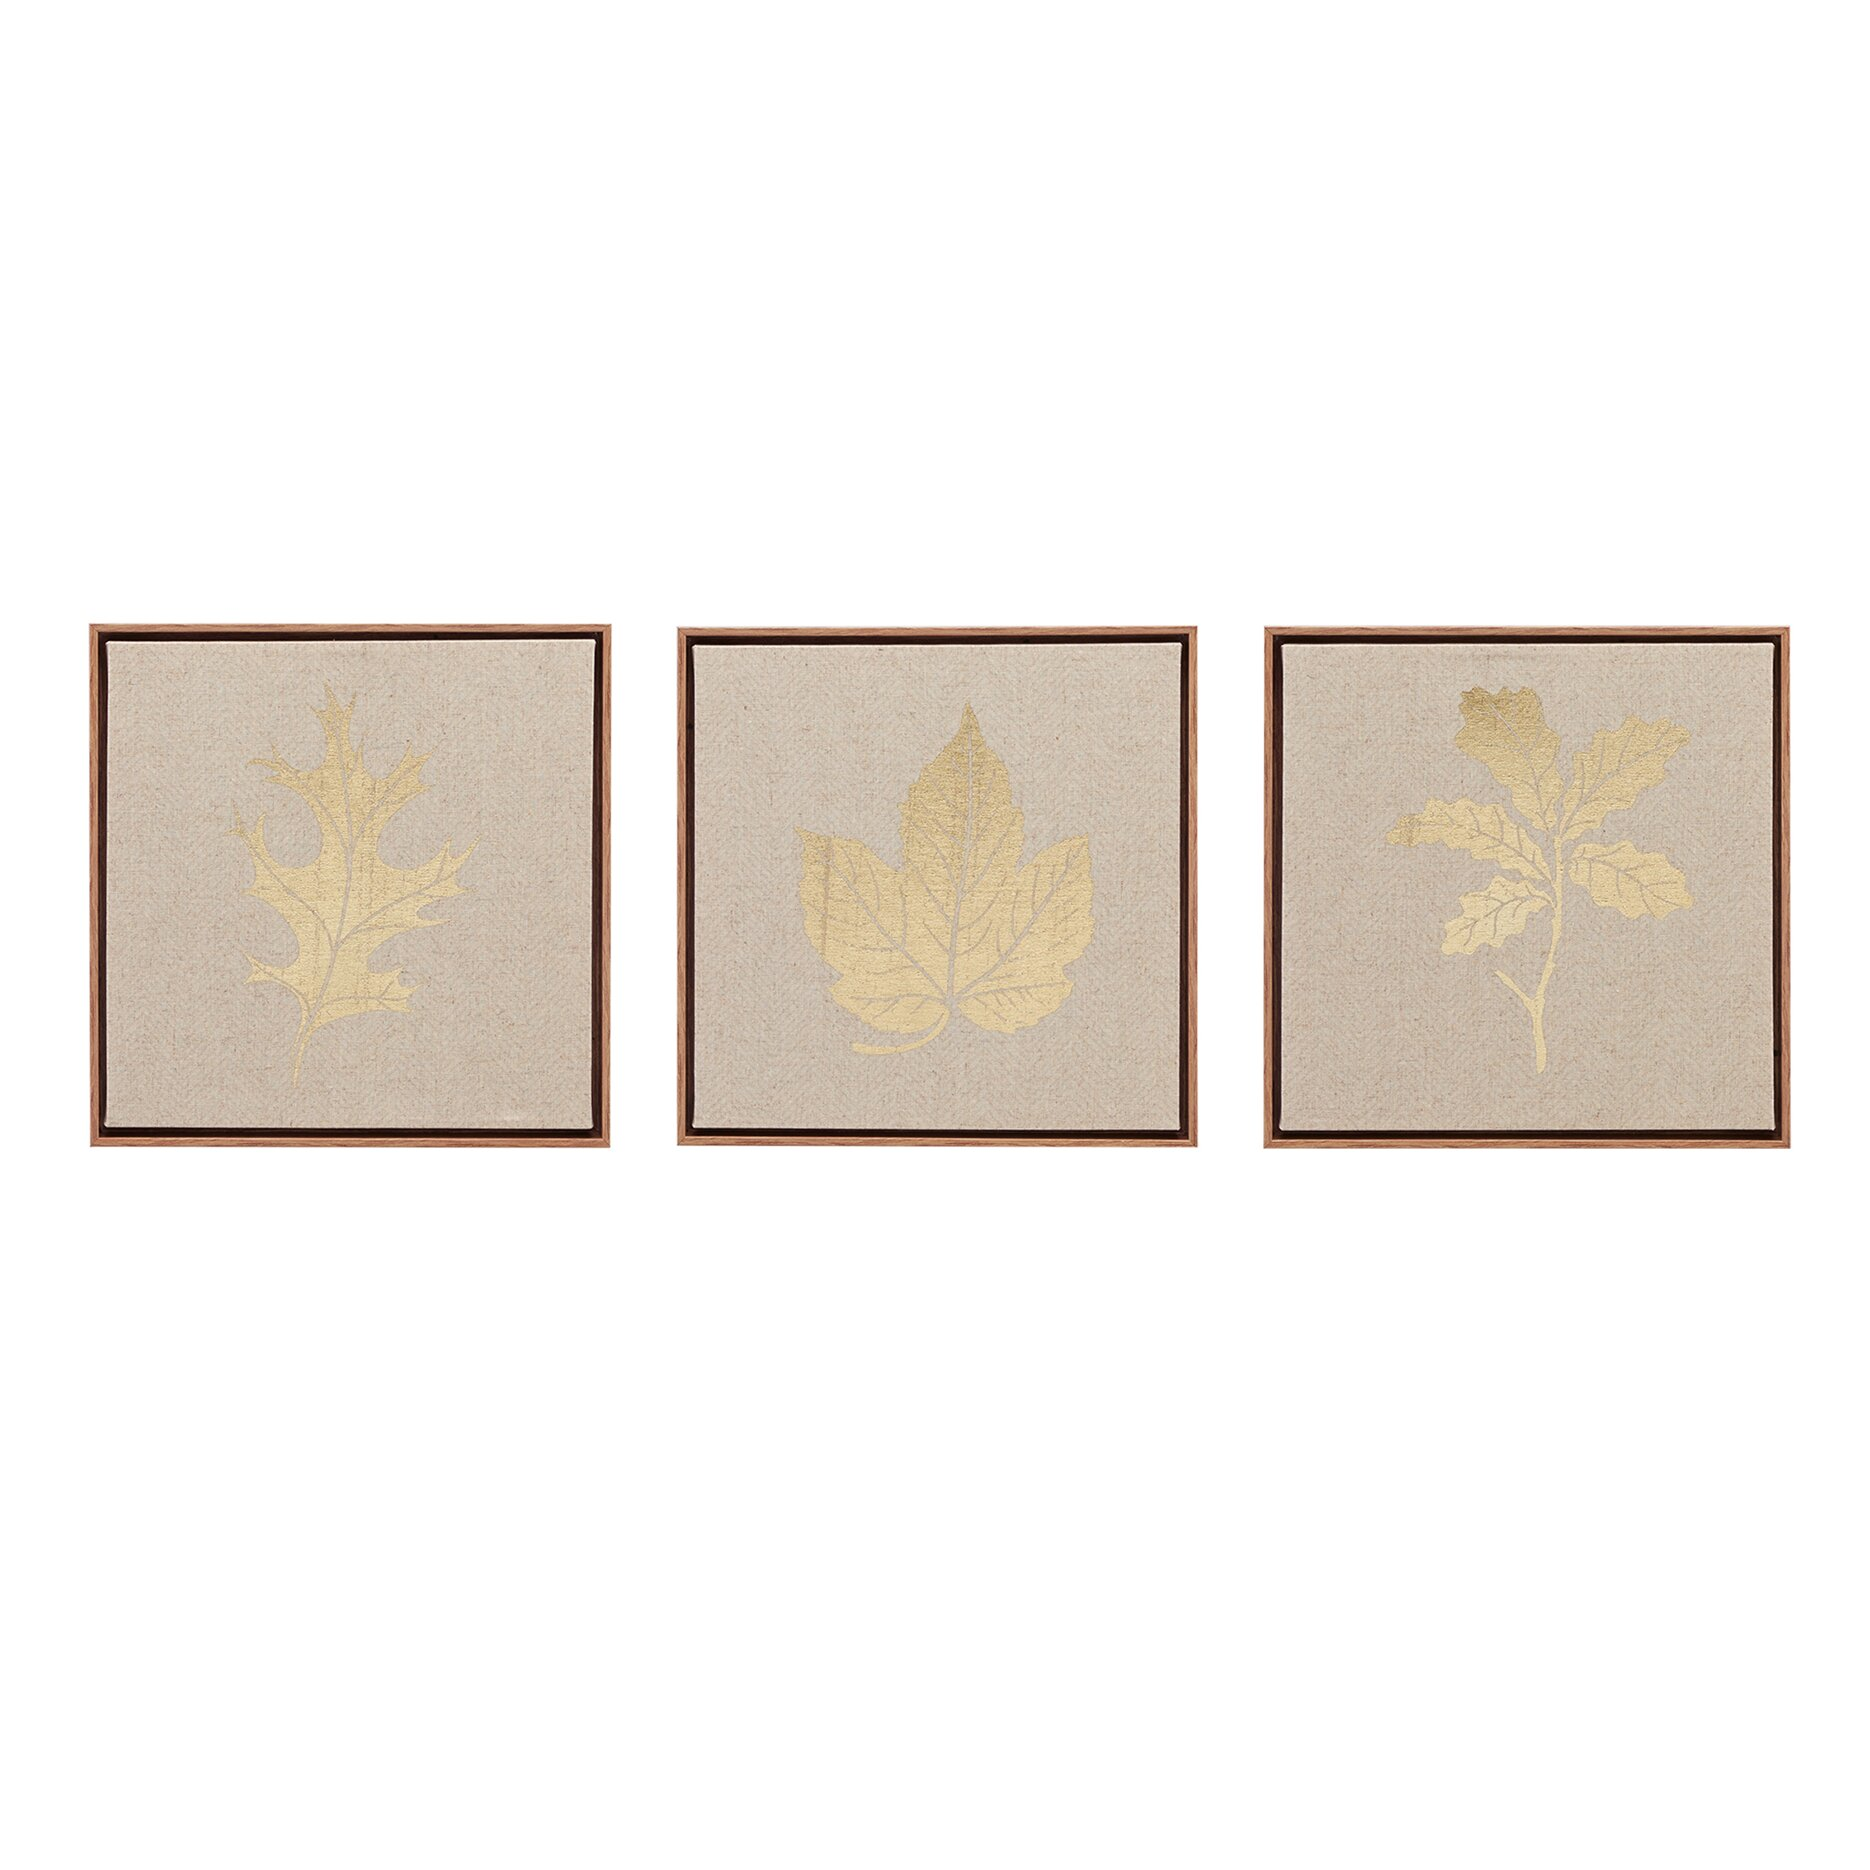 Gracie oaks 39golden harvest39 3 piece framed graphic art on for Kitchen cabinets lowes with three piece canvas wall art